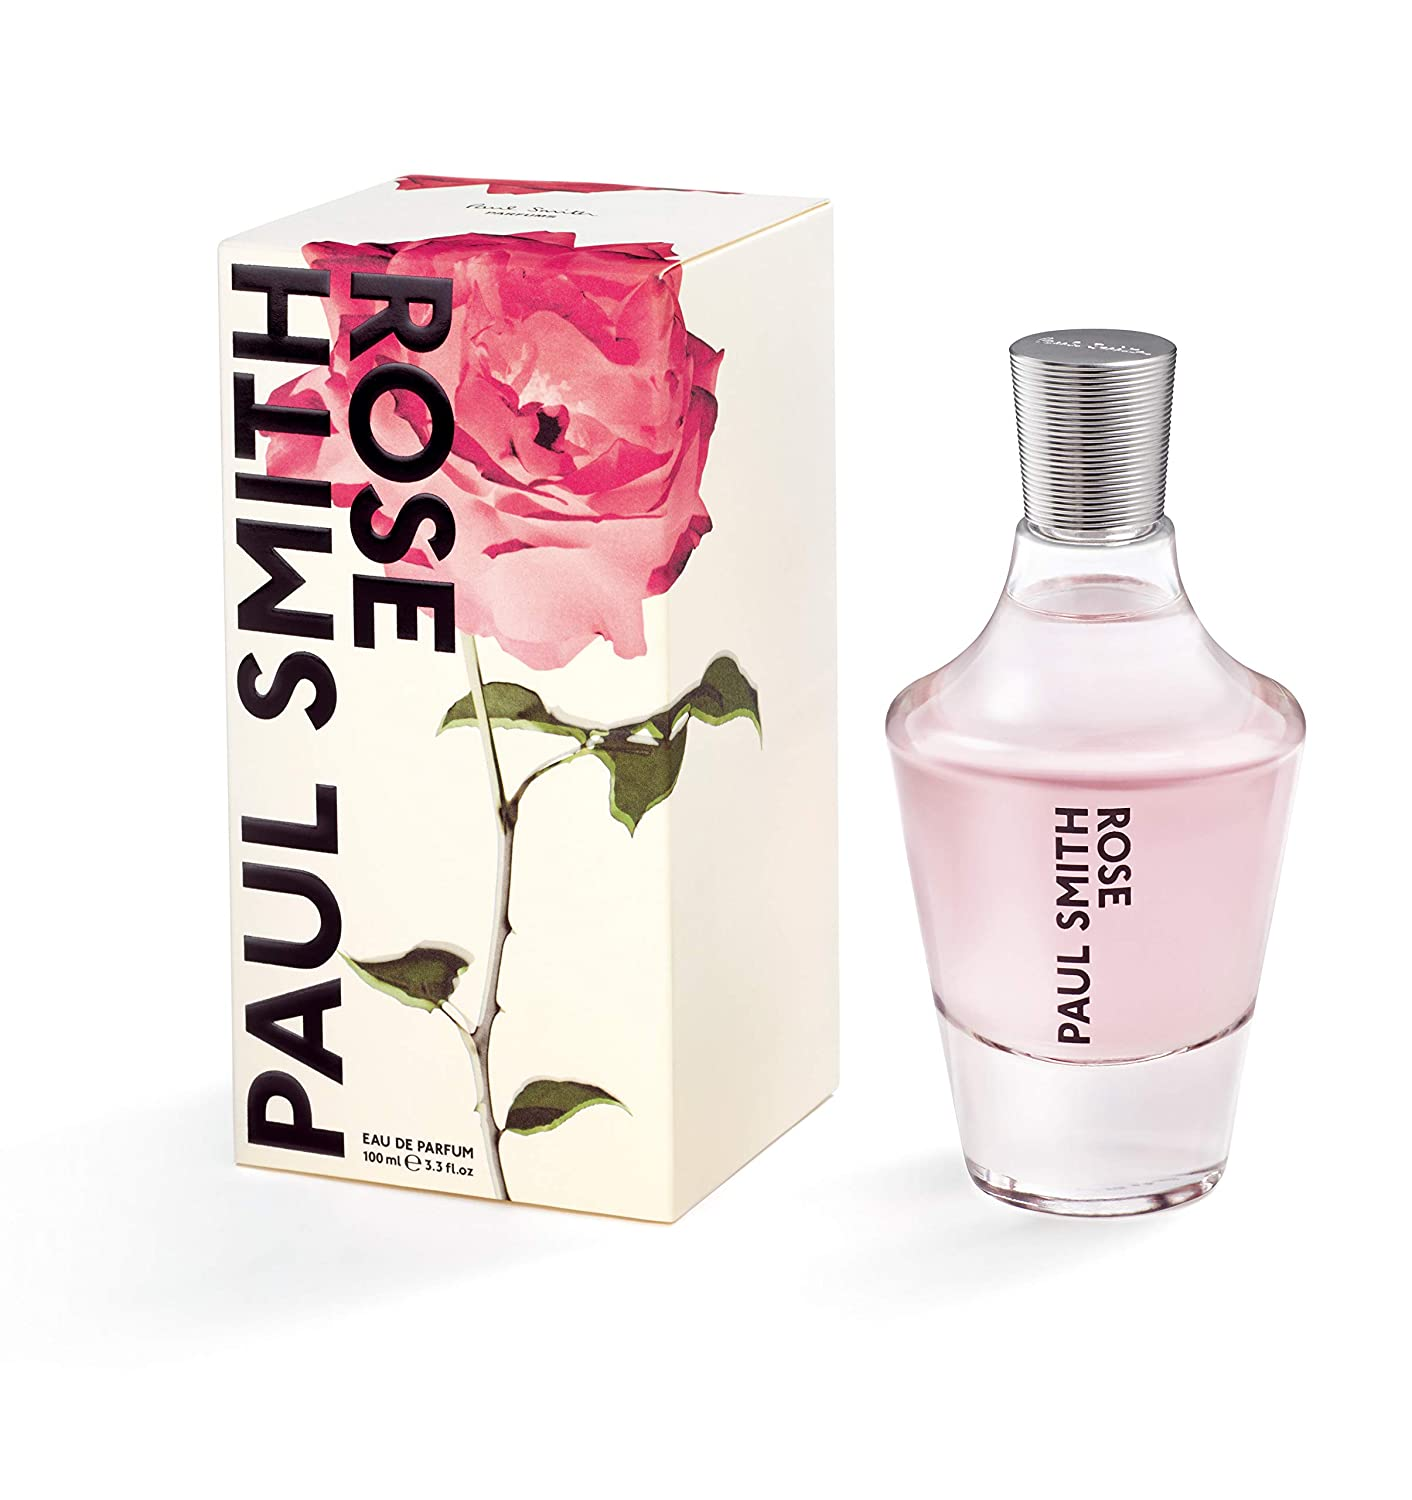 Paul Ml RoseFemmewomanEau Smith Parfum100 De txQdCoshrB